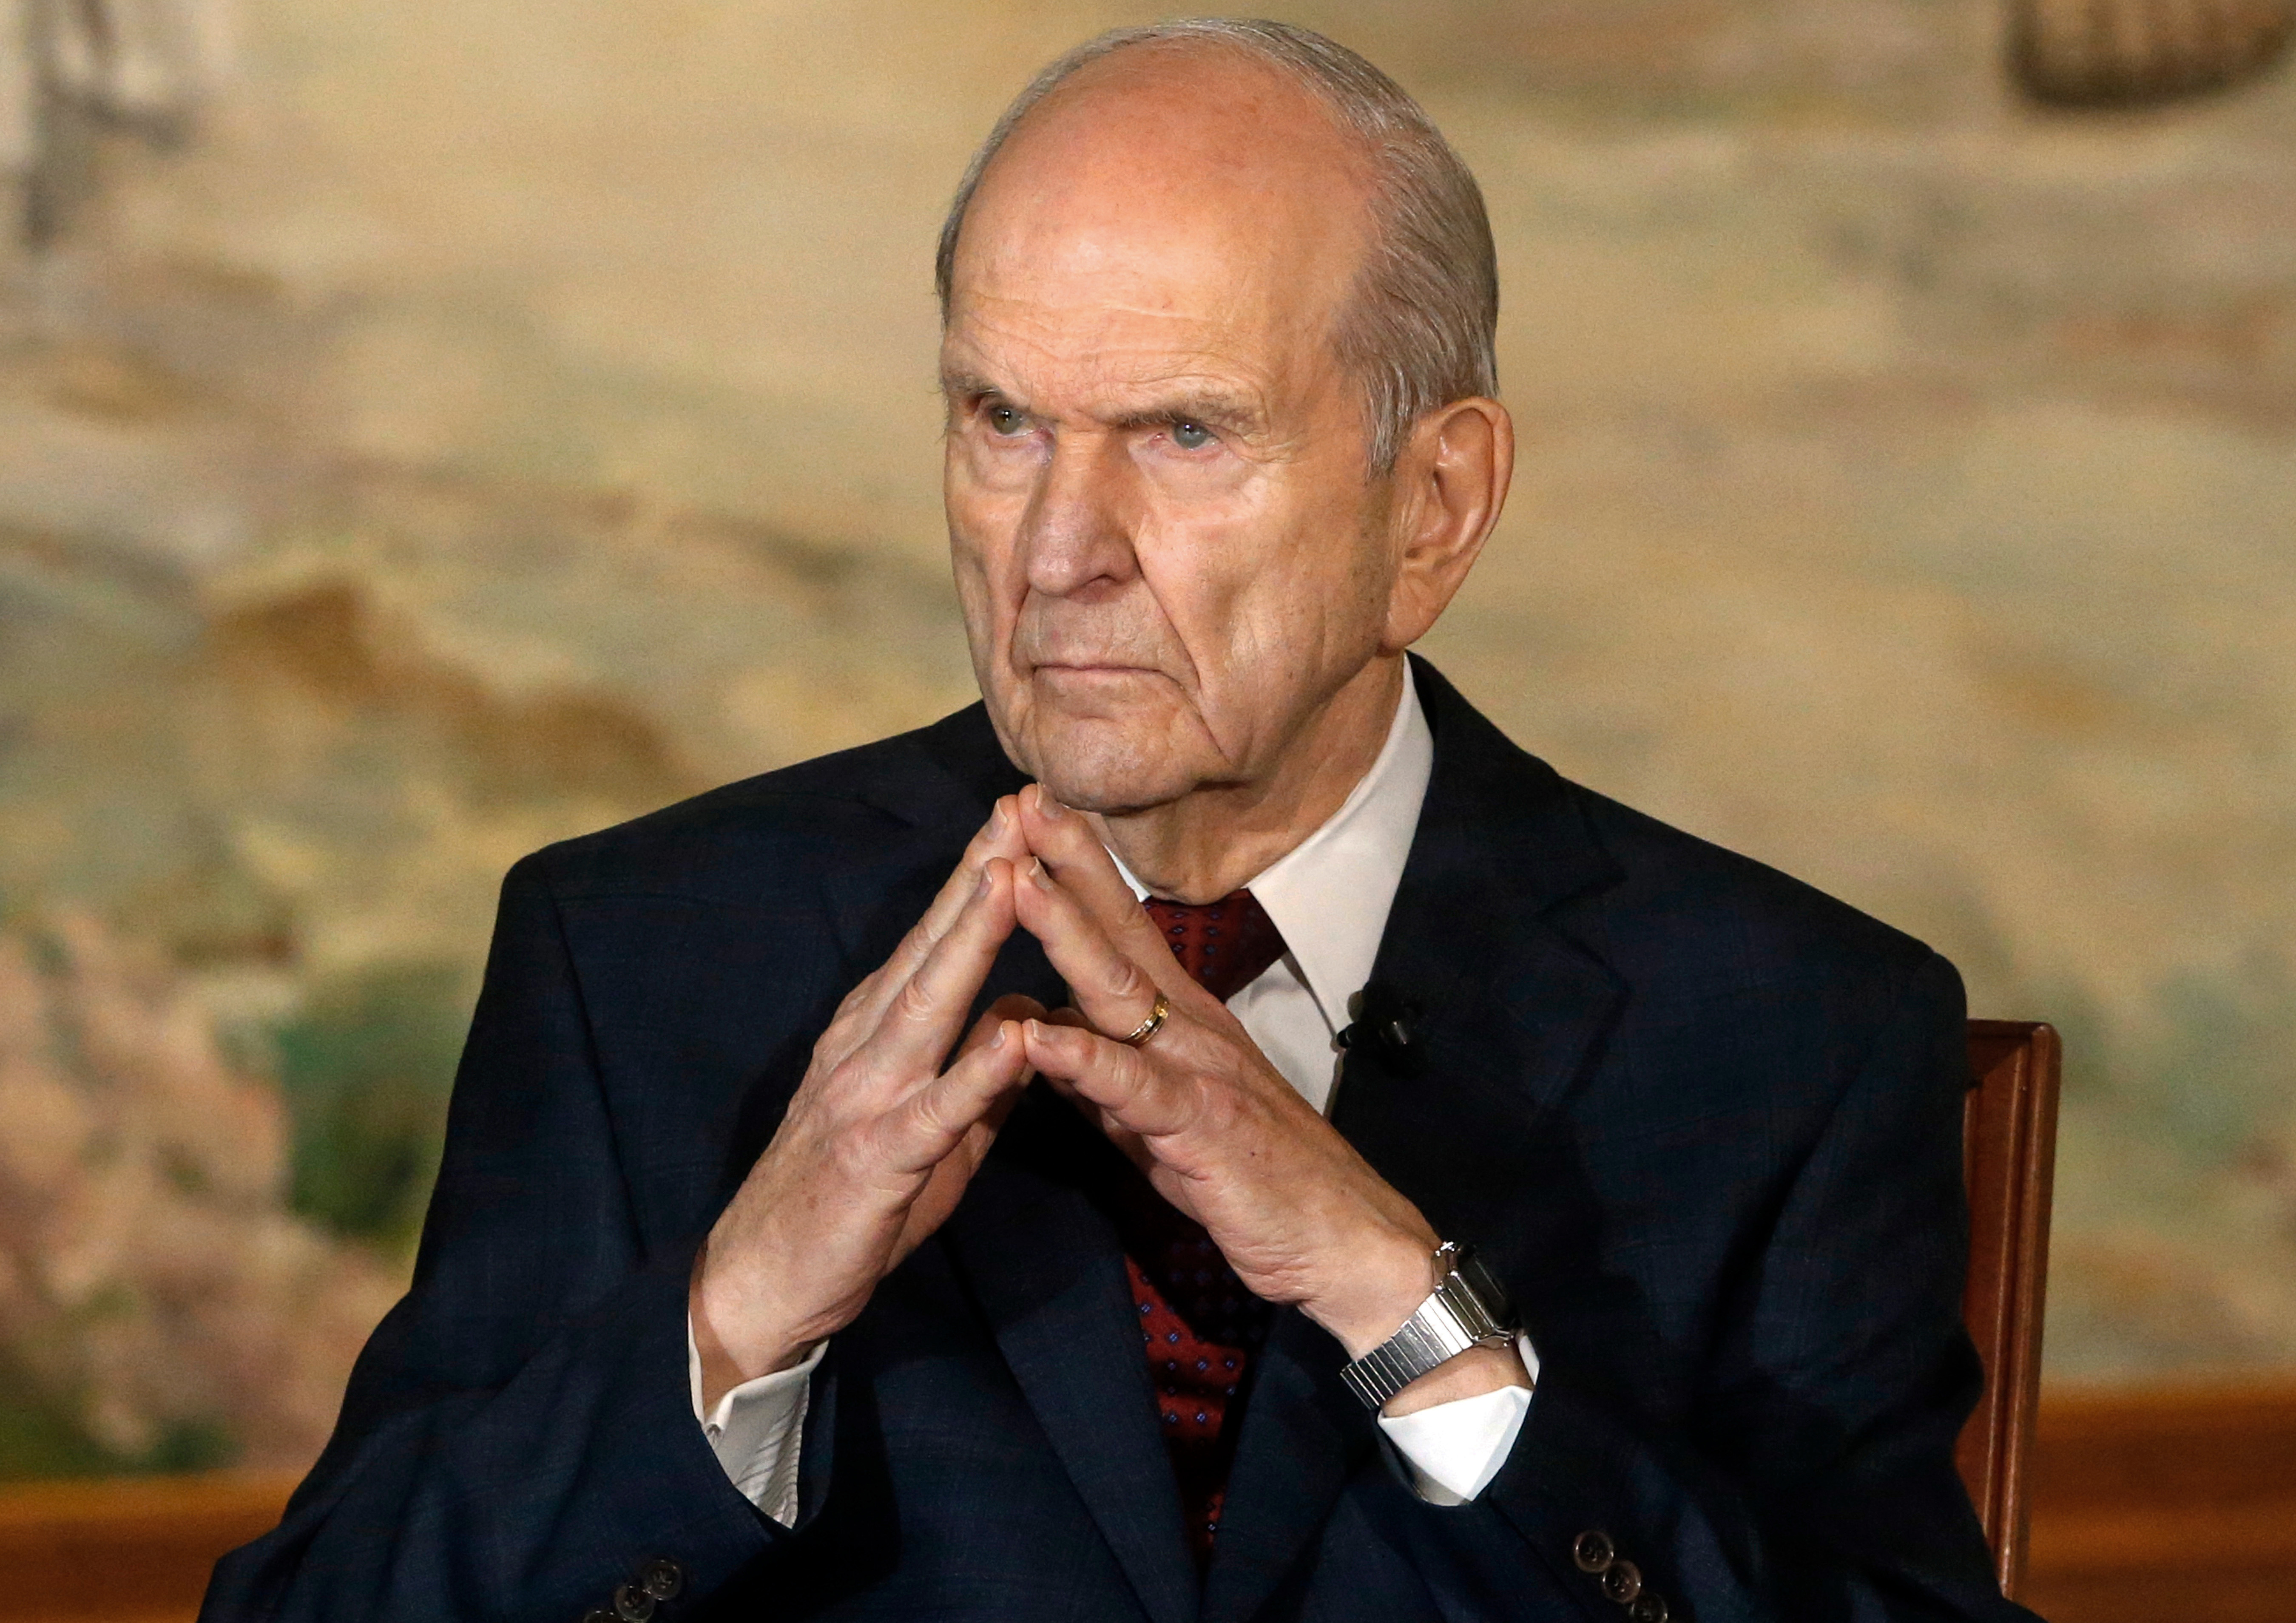 FILE - President Russell M. Nelson looks on following a news conference, in Salt Lake City, Jan. 16, 2018. The Mormon church is expected to select two new members to a top governing body during a twice-yearly church conference this weekend.